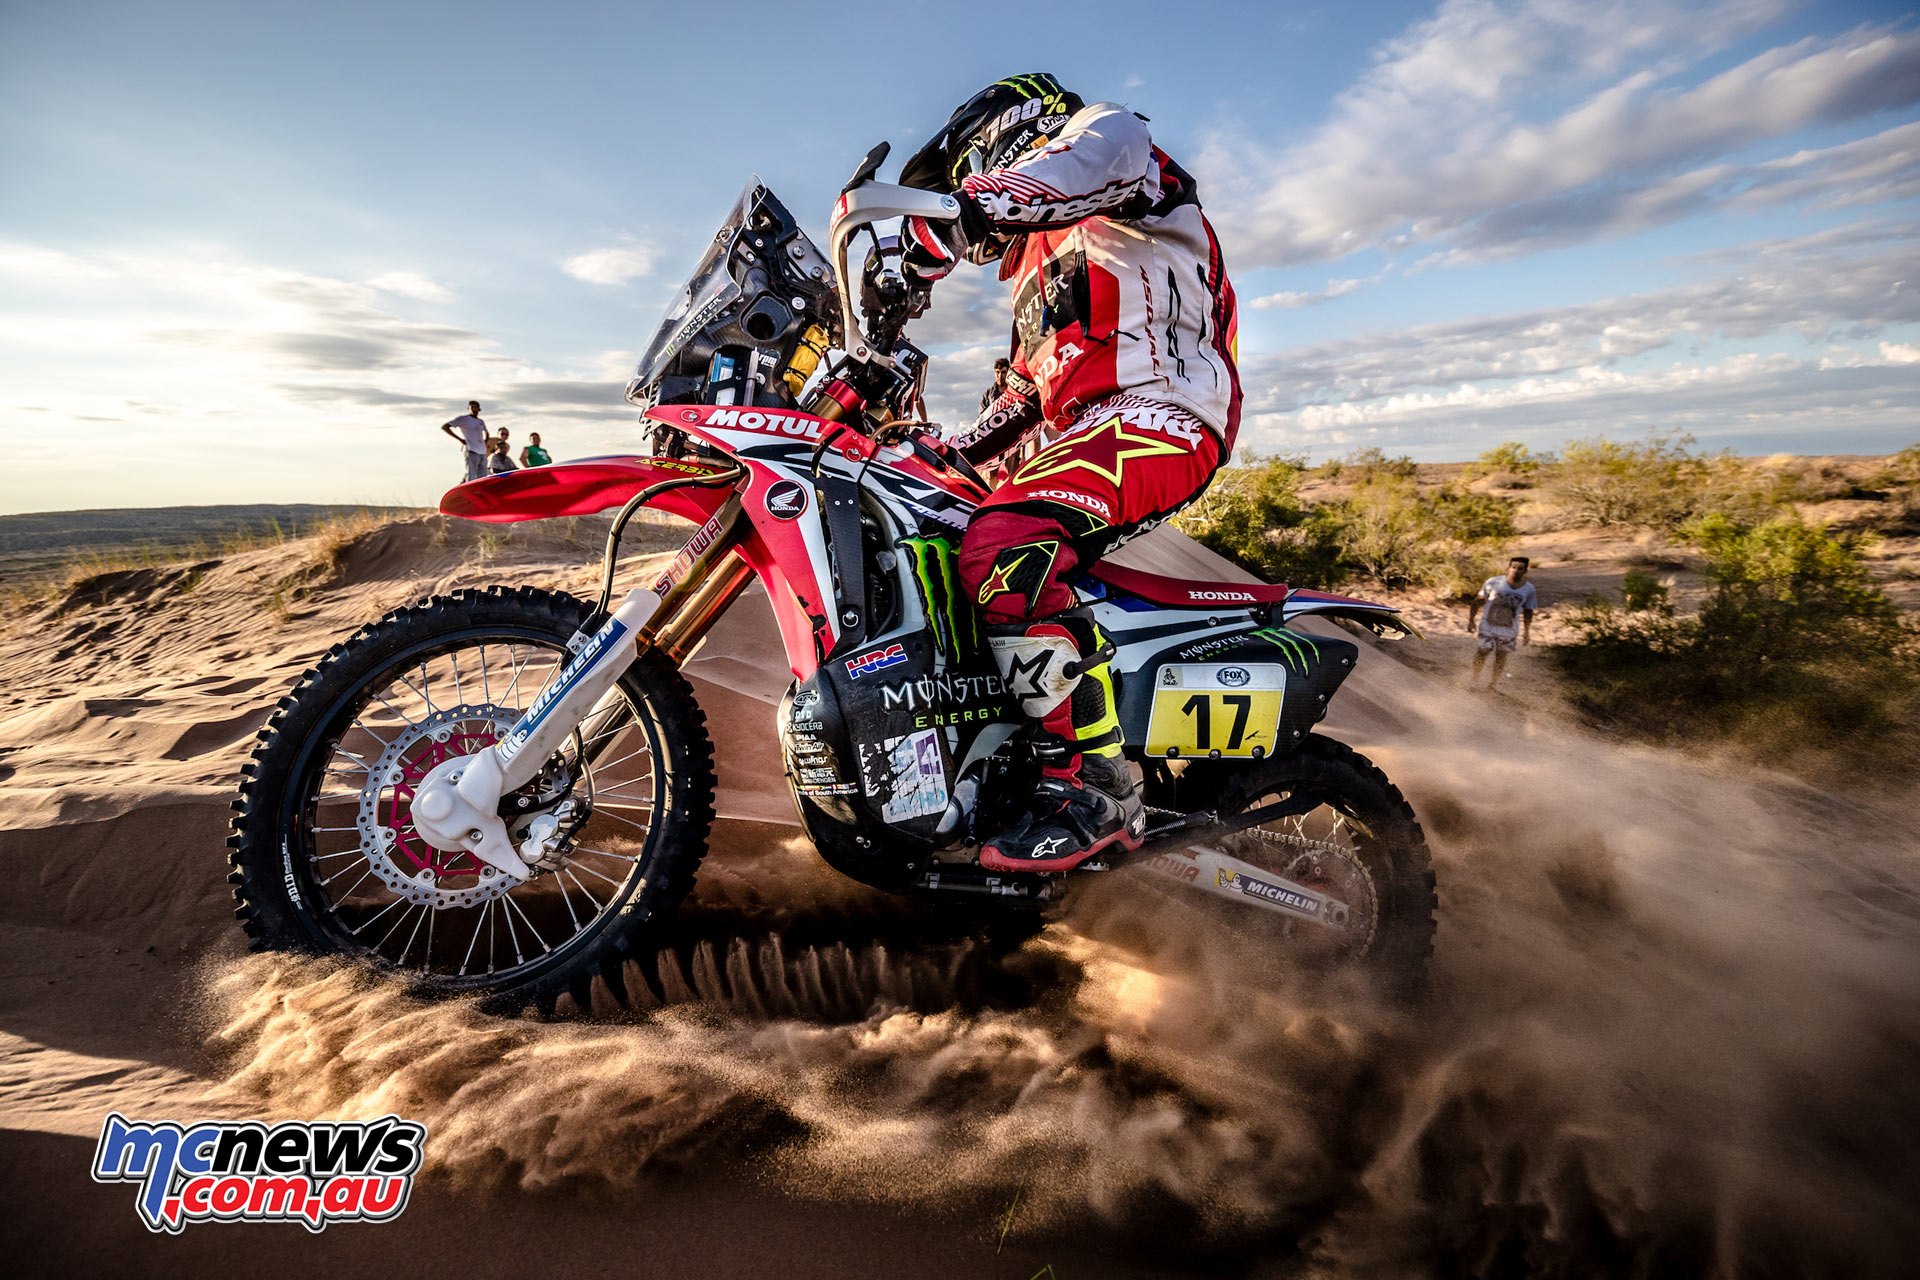 2017 Dakar Rally - Paulo Goncalves